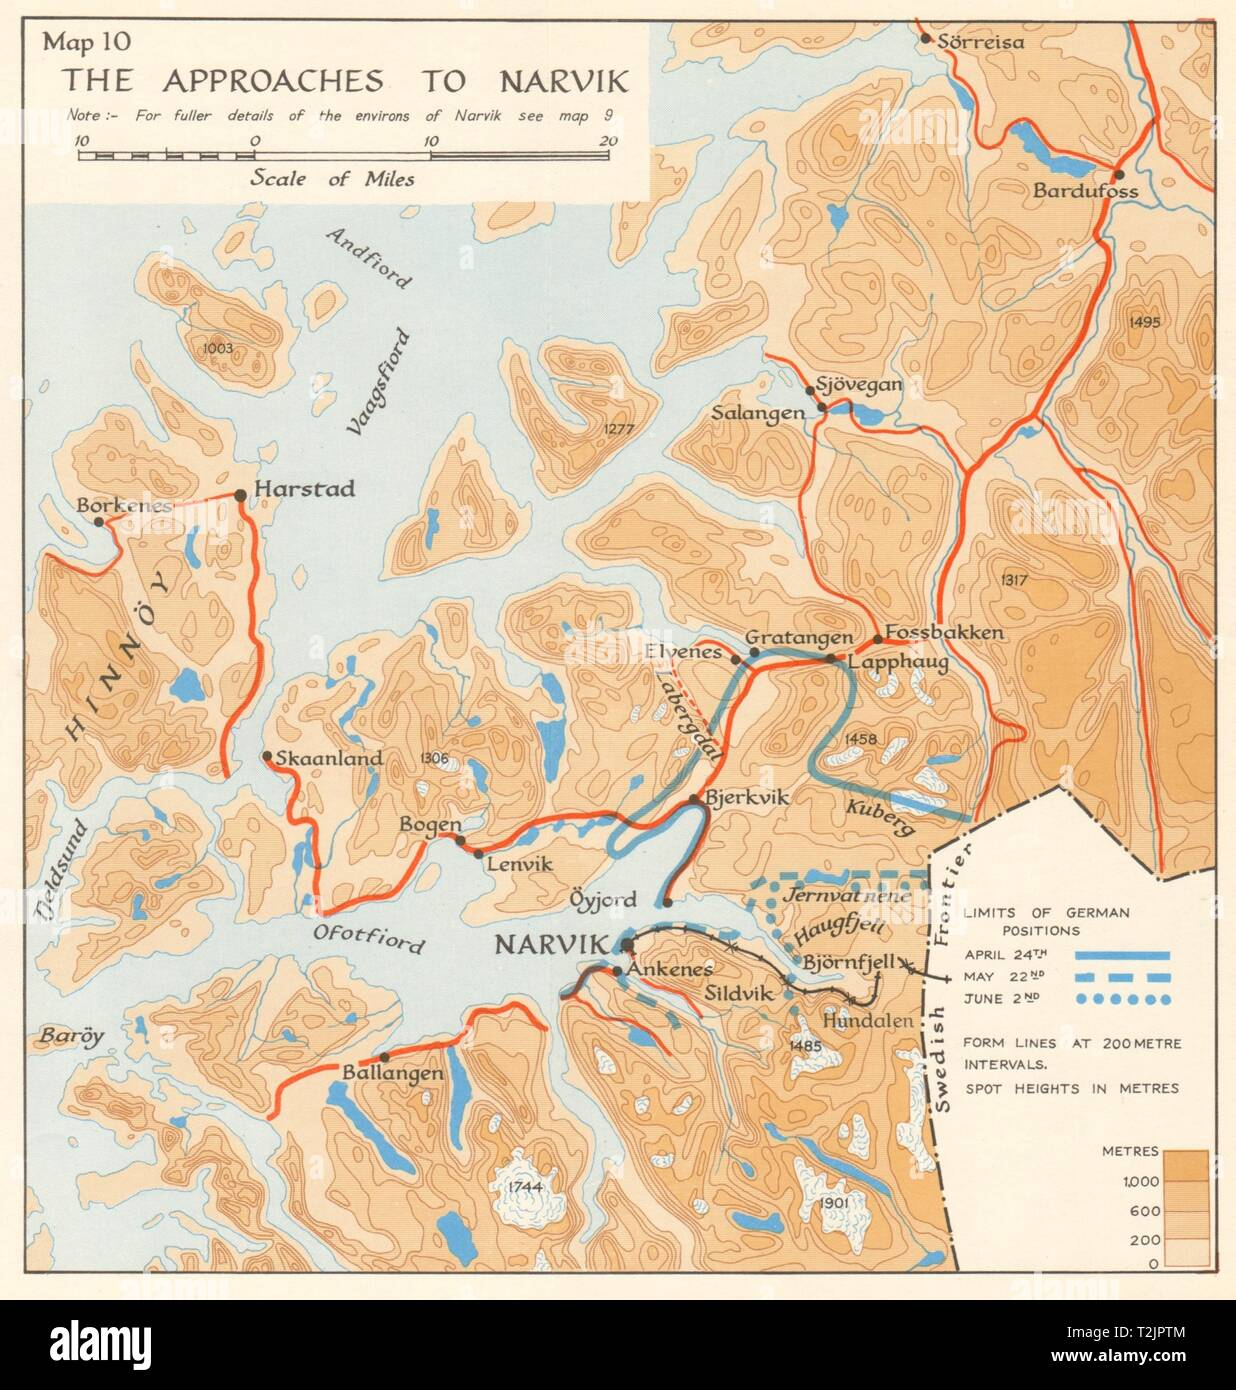 World War 2 Norway Campaign. Narvik approaches 1940. German Invasion ...